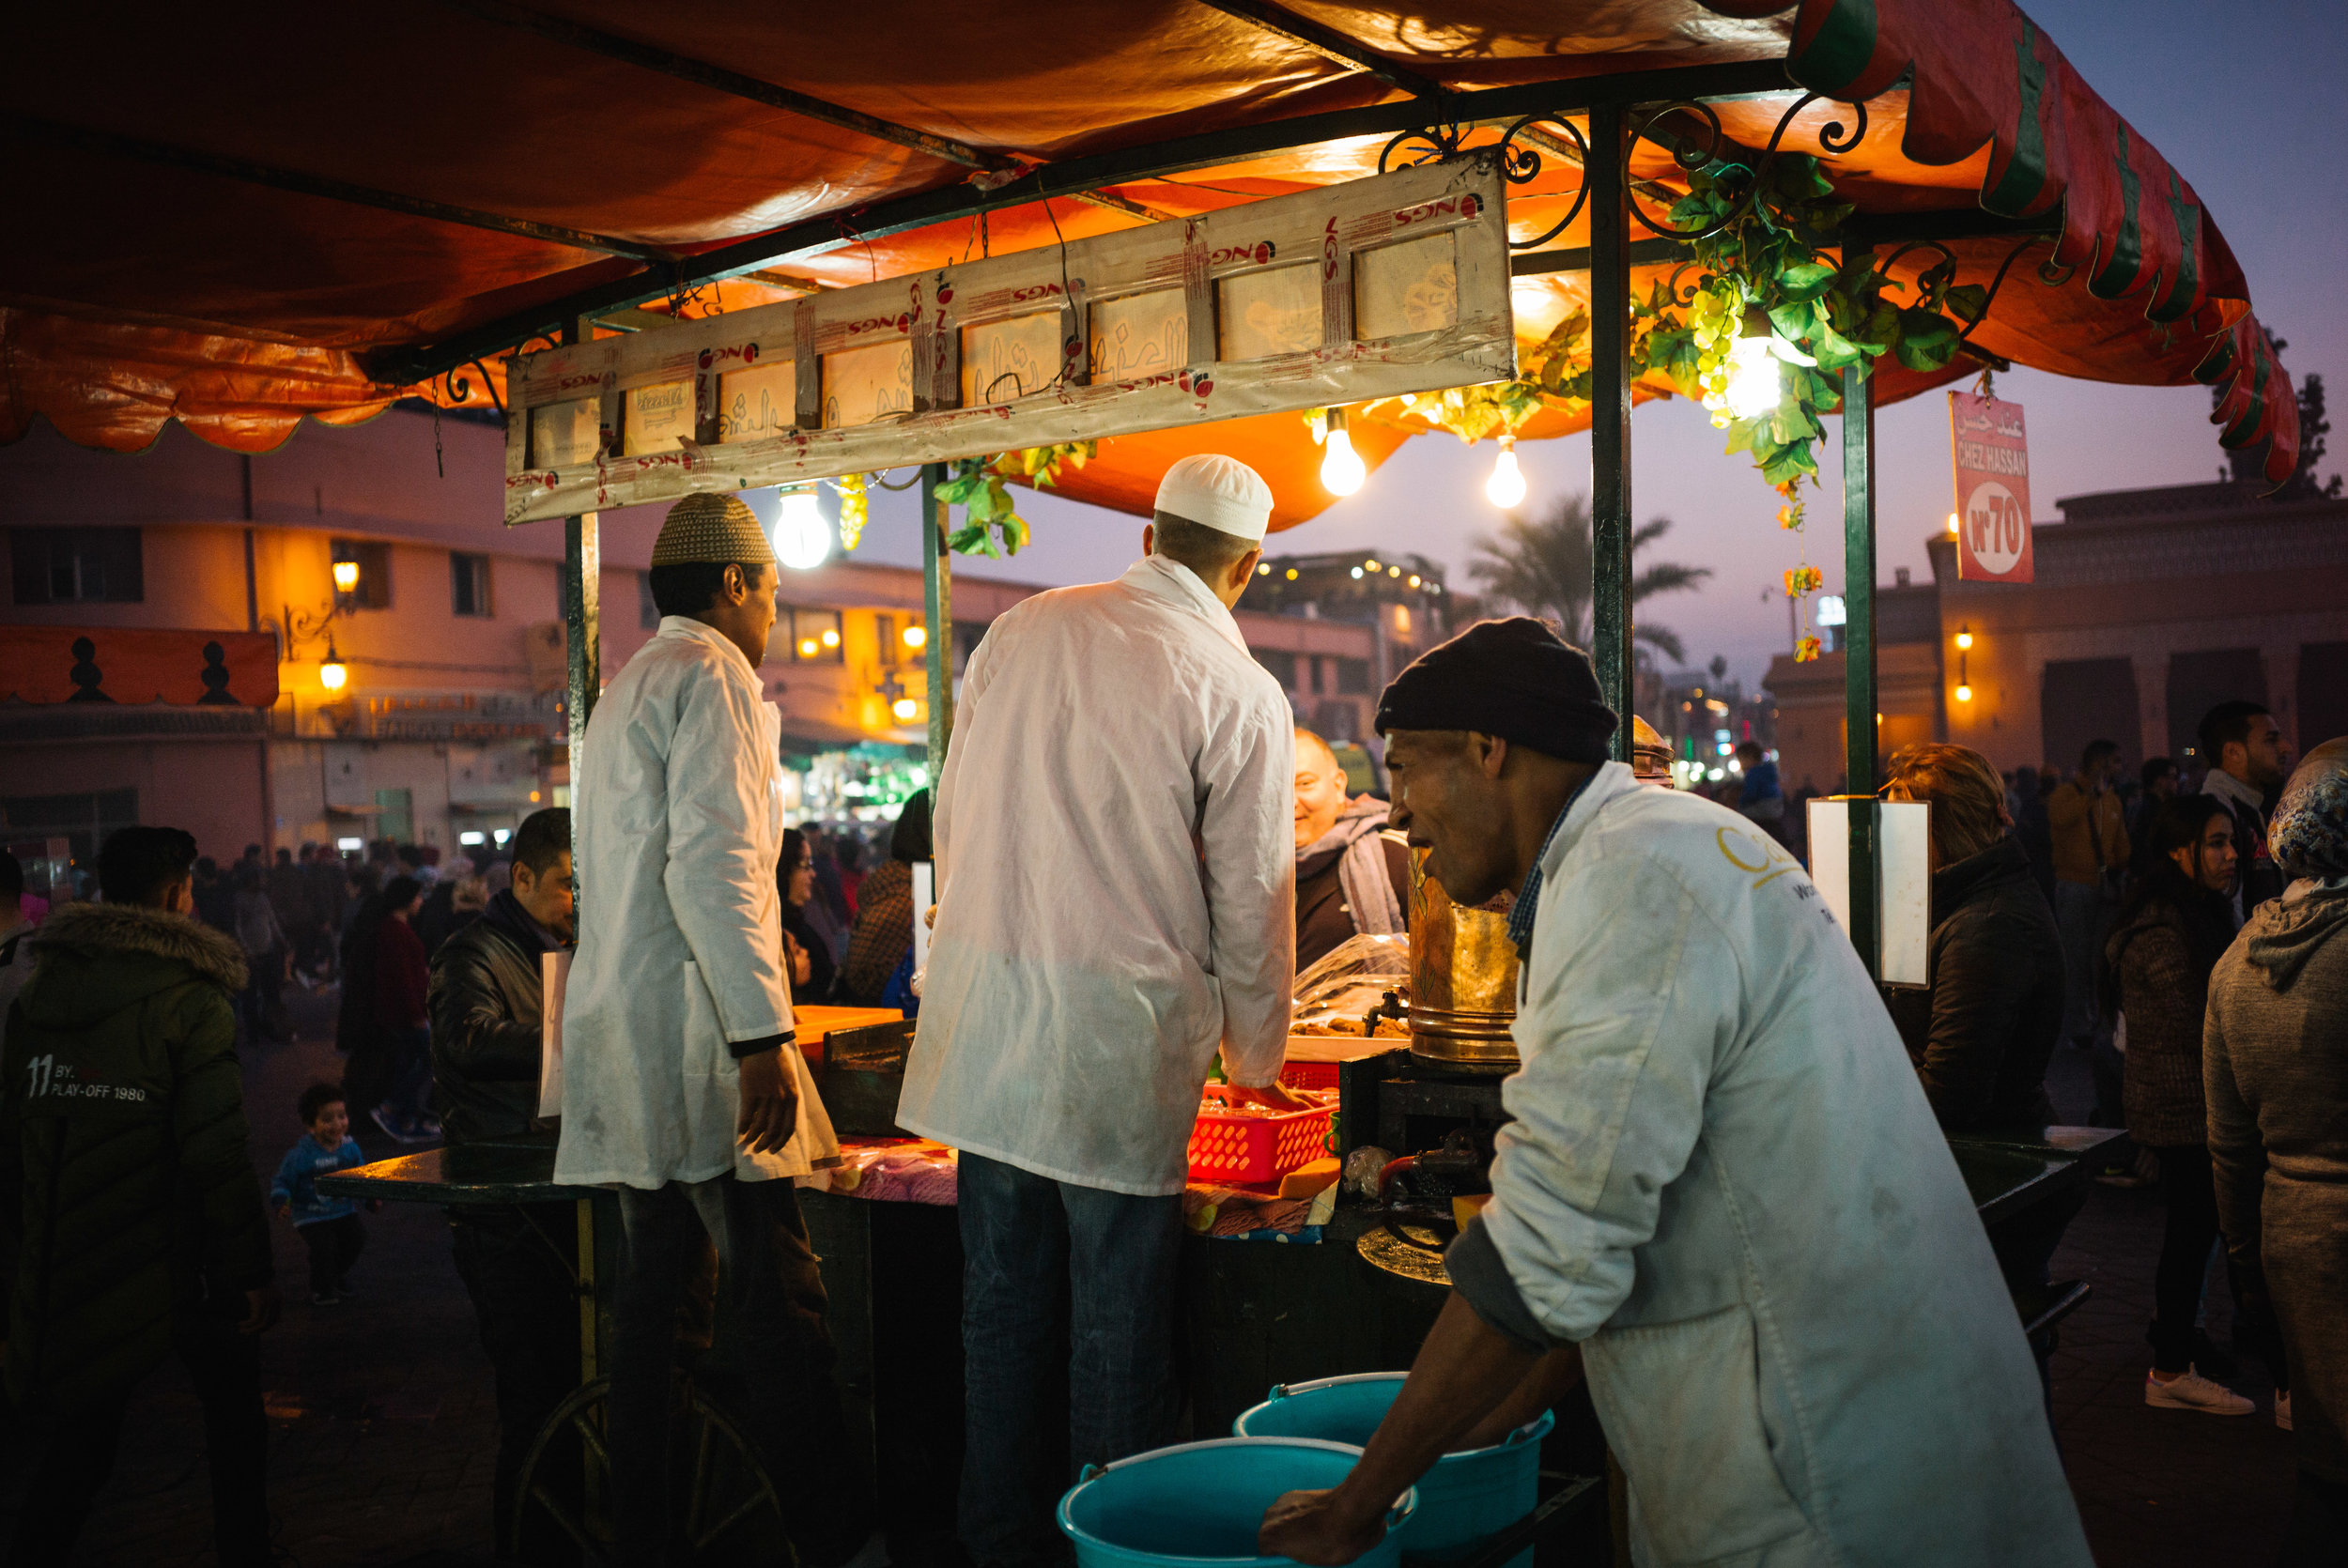 One of many busy stalls in the Jemaa el-Fnaa - Clifford Darby 2018